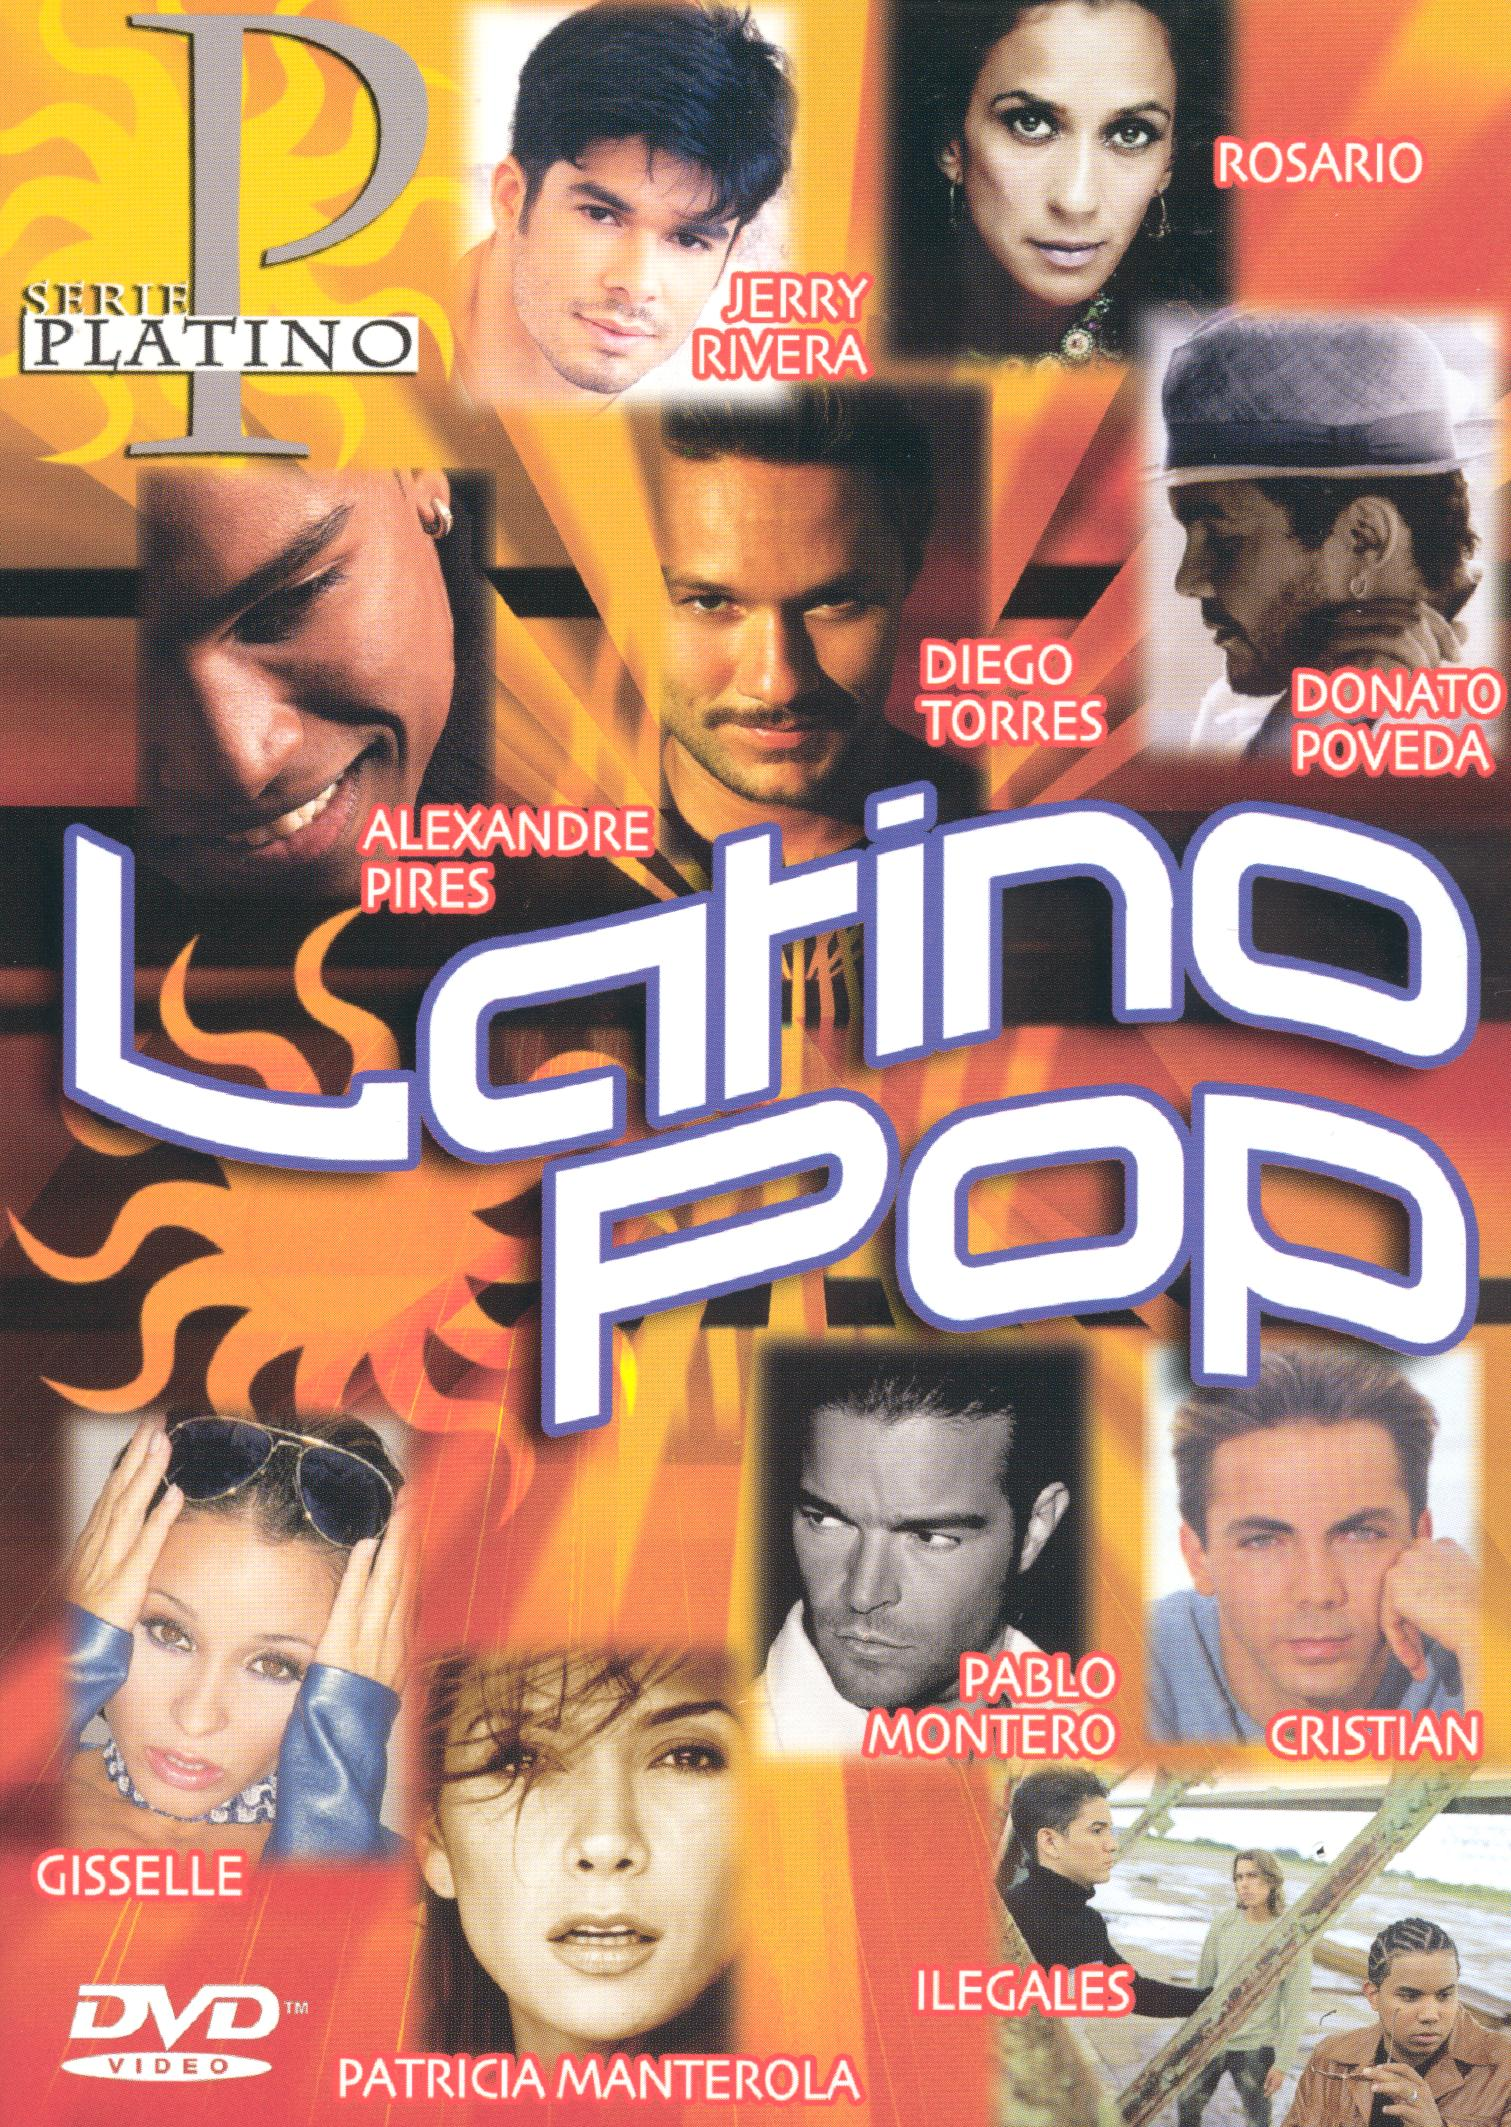 Latino Pop: Serie Platino